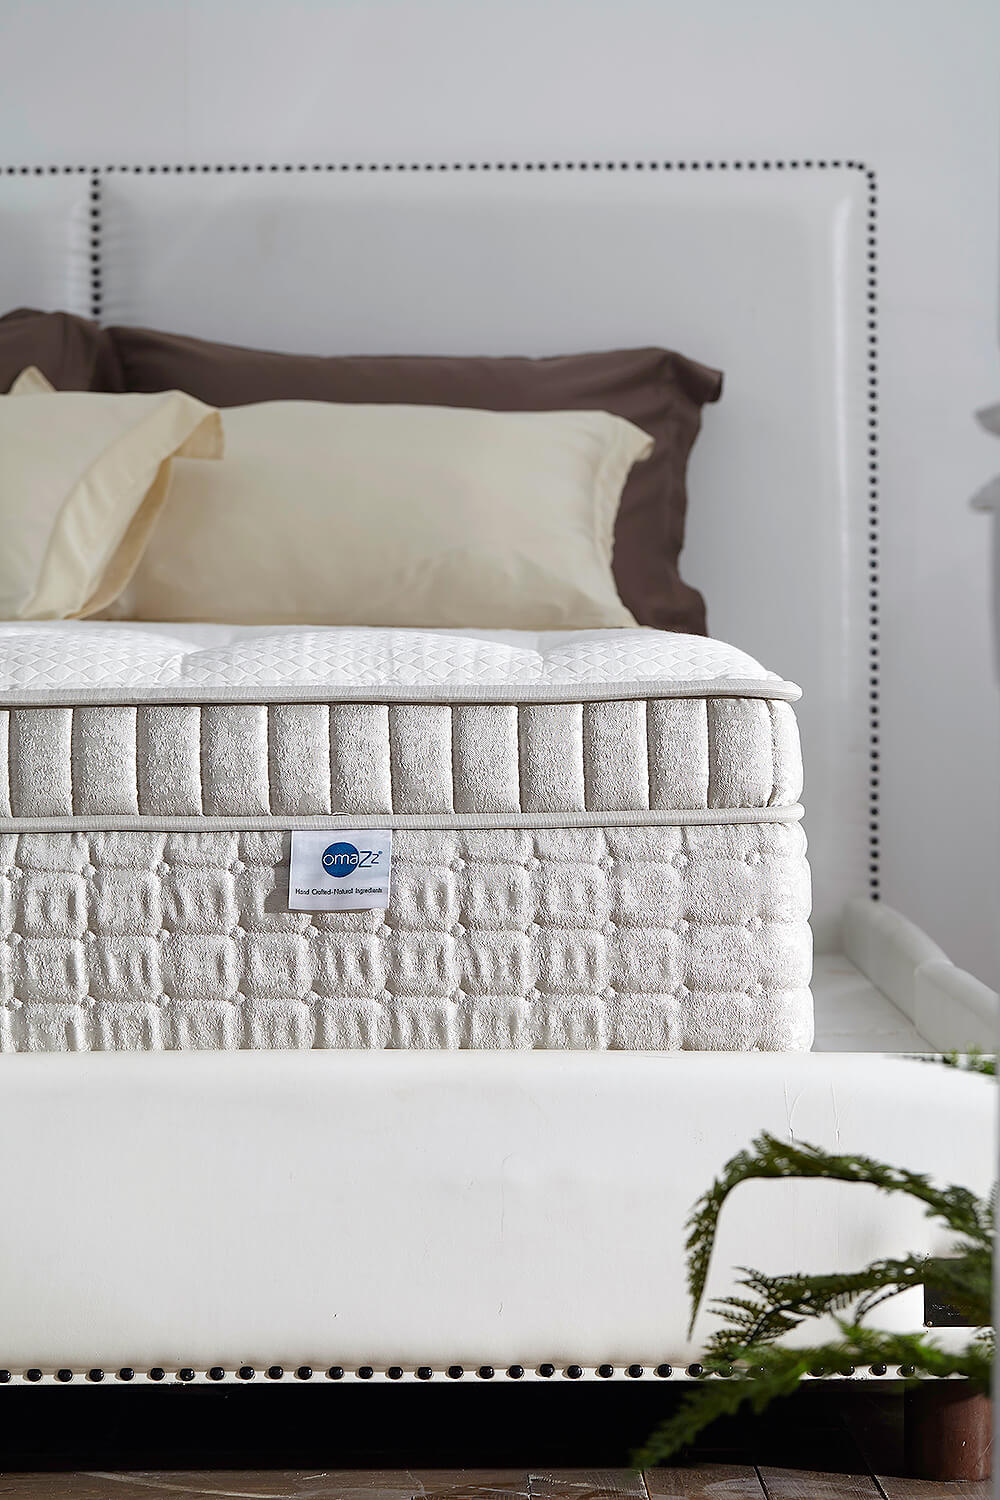 omazz-mattress-french-totto-o-3